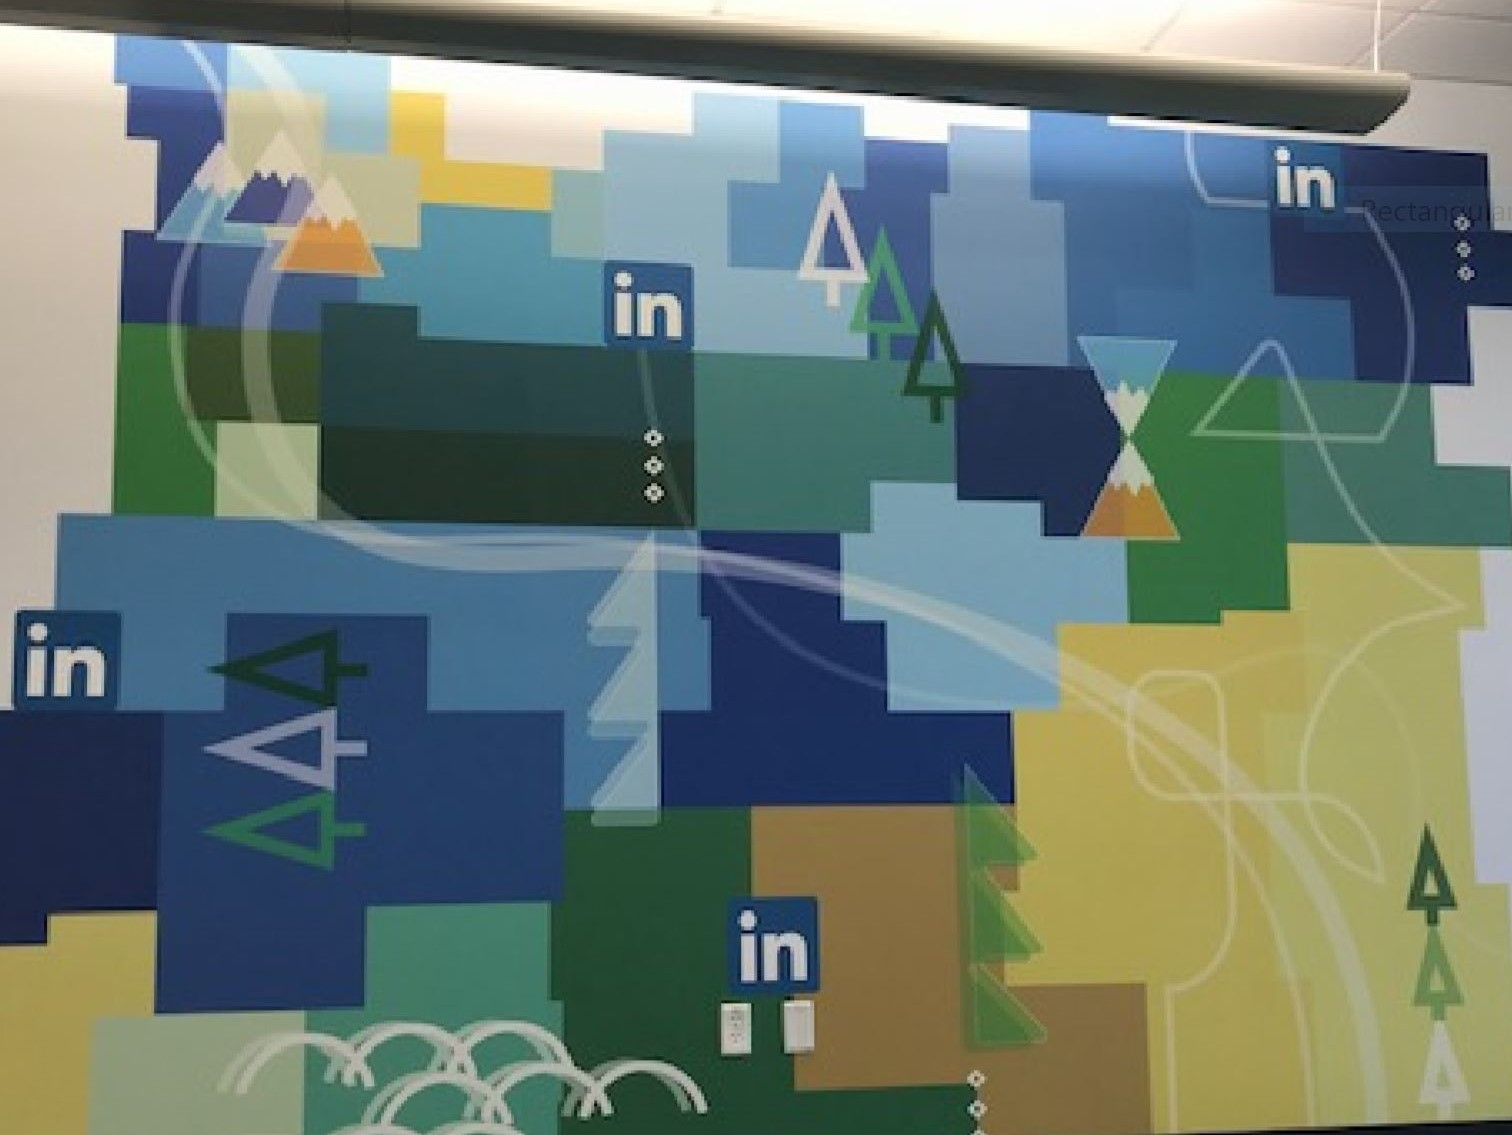 LinkedIn Wall Graphic by BarkerBlue Create-1